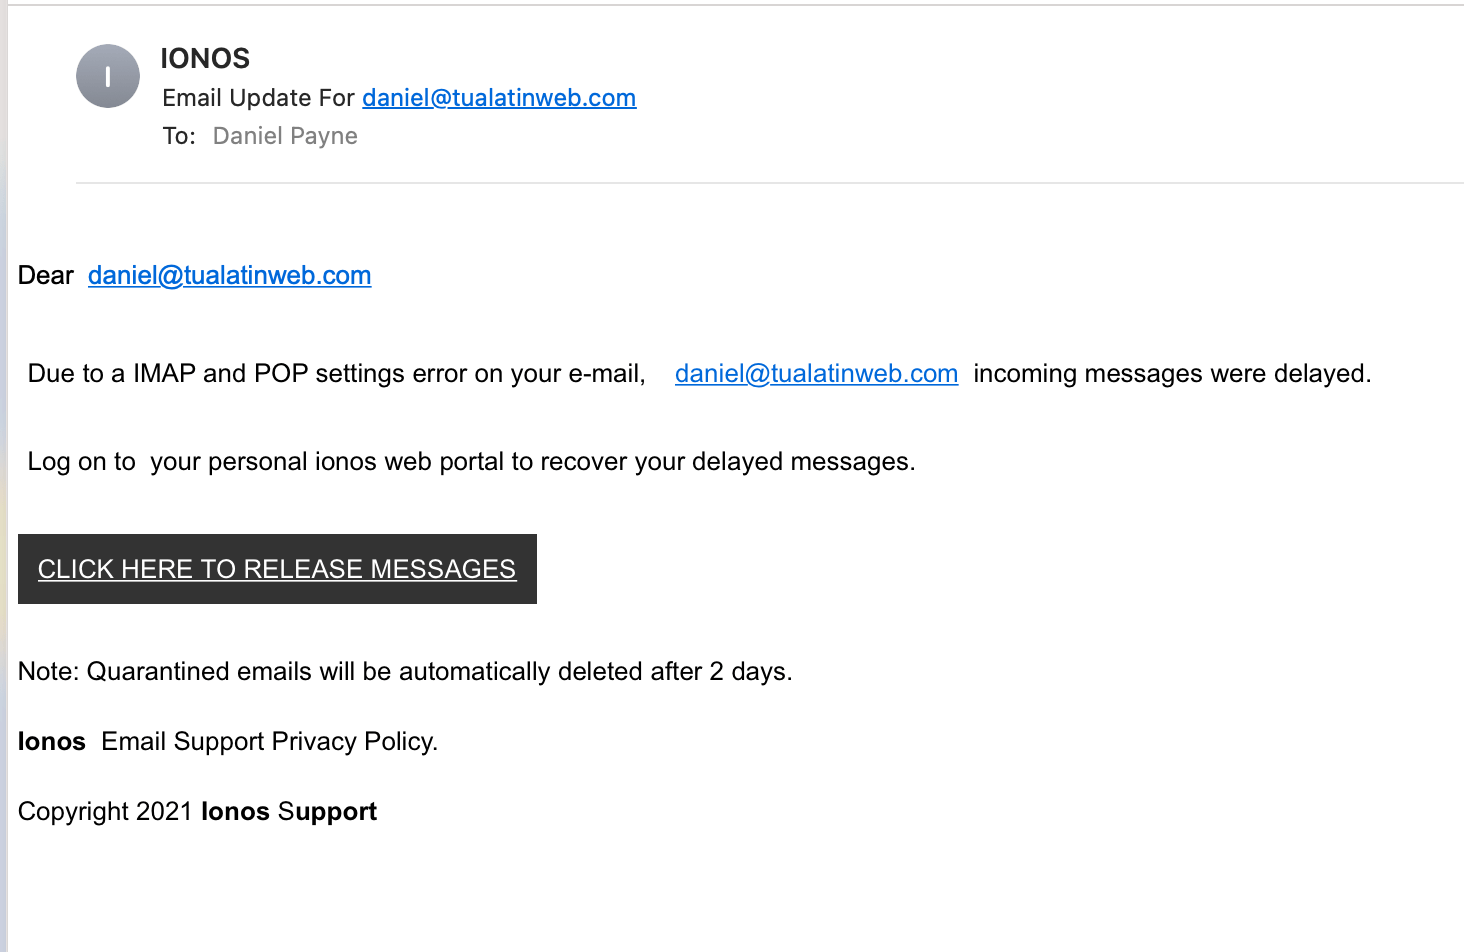 Email Phishing, That's Not IONOS